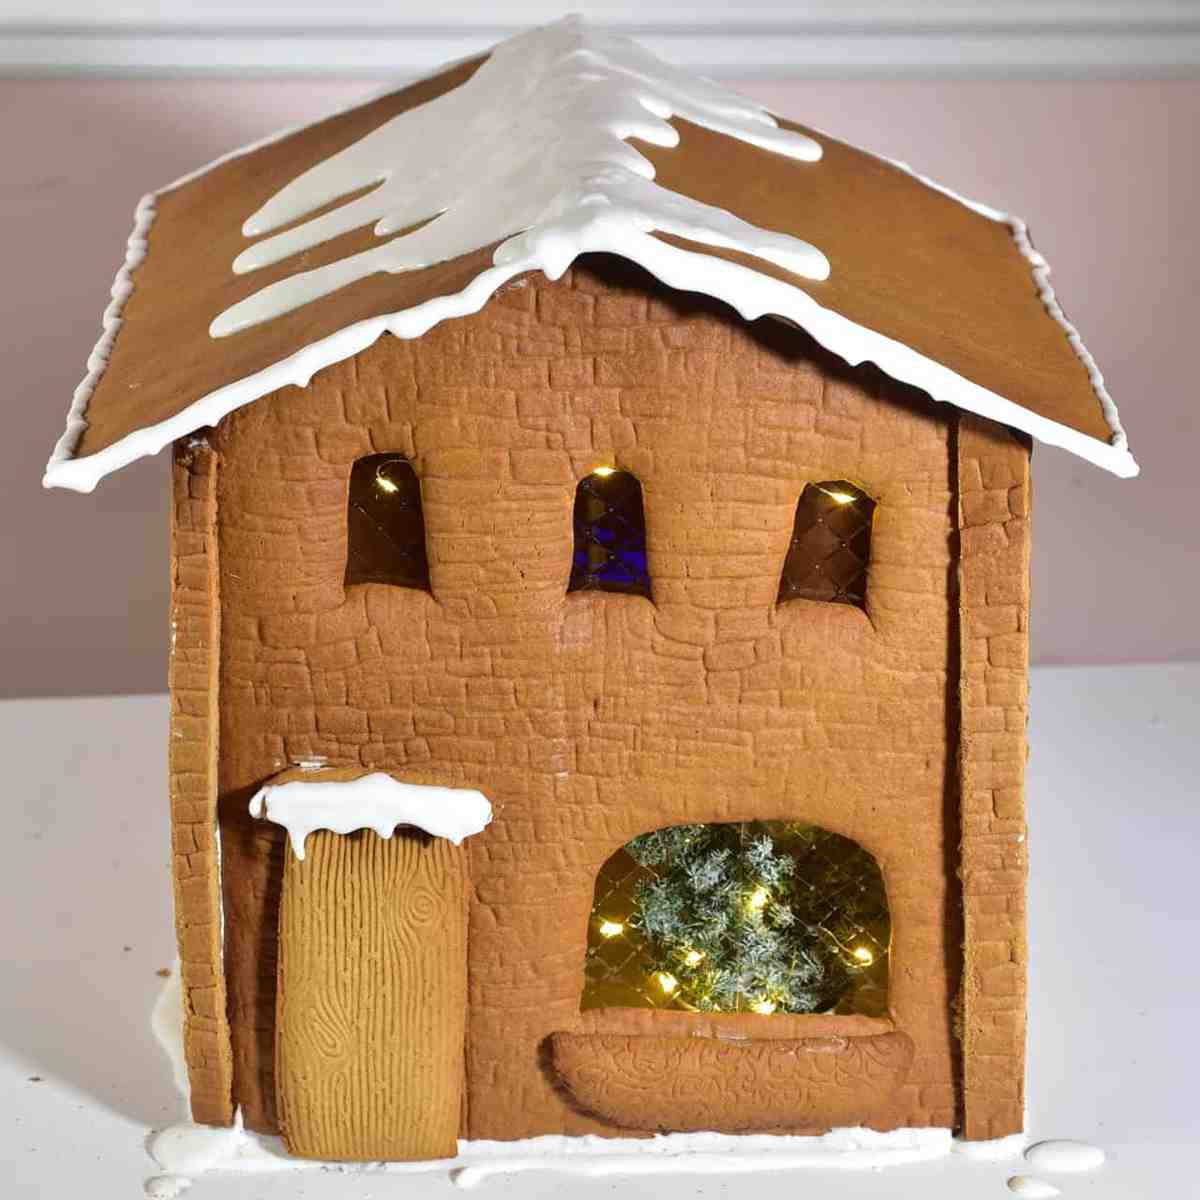 Gingerbread house decorated with some royal icing to imitate snow on the roof